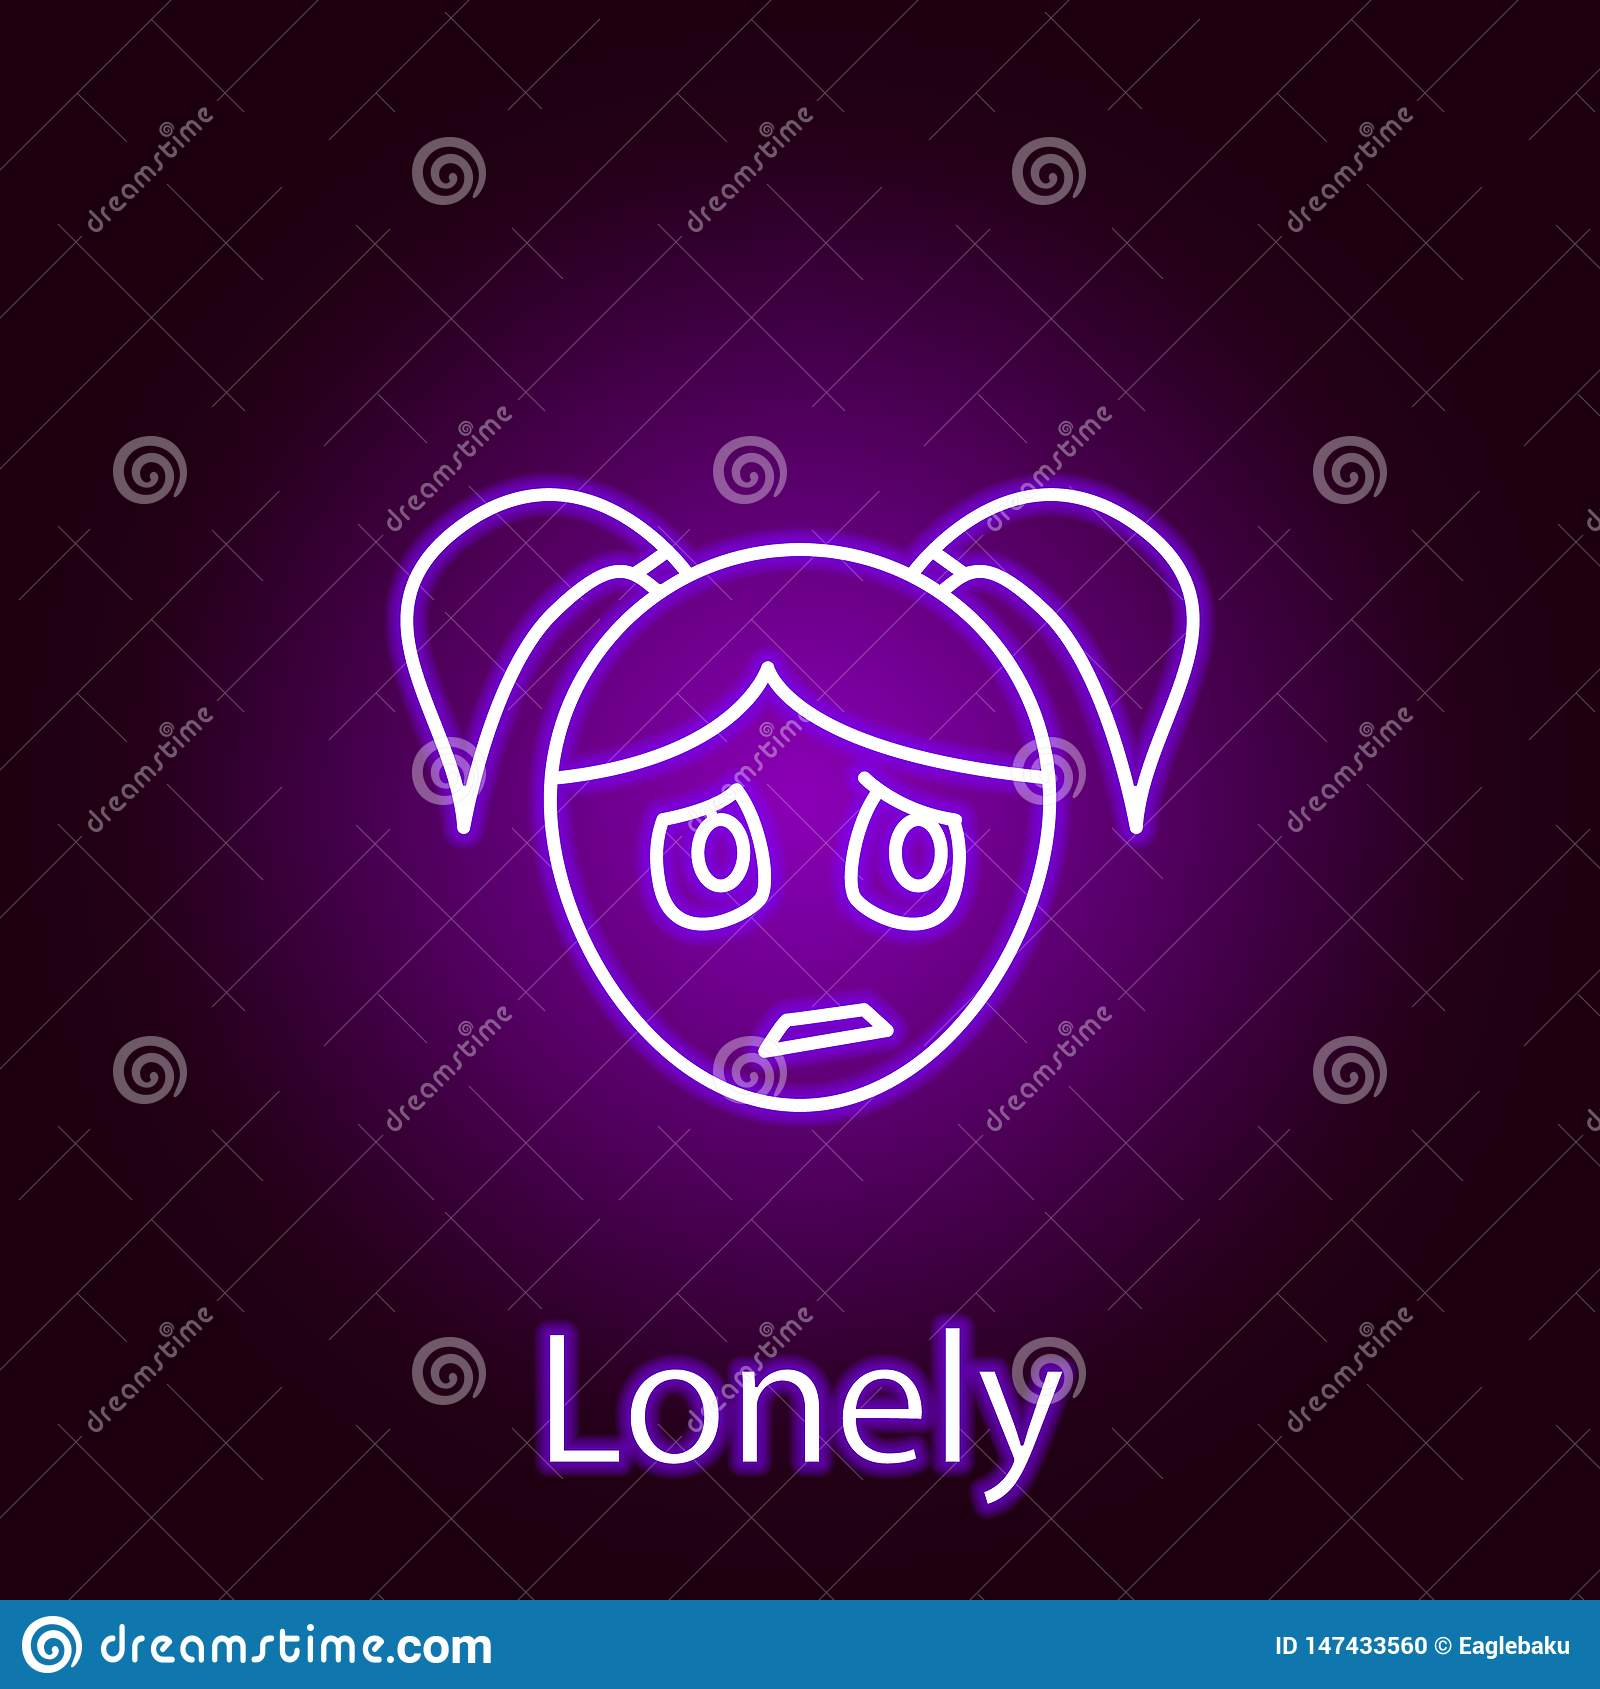 Lonely girl stock illustrations 2321 lonely girl stock illustrations vectors clipart dreamstime